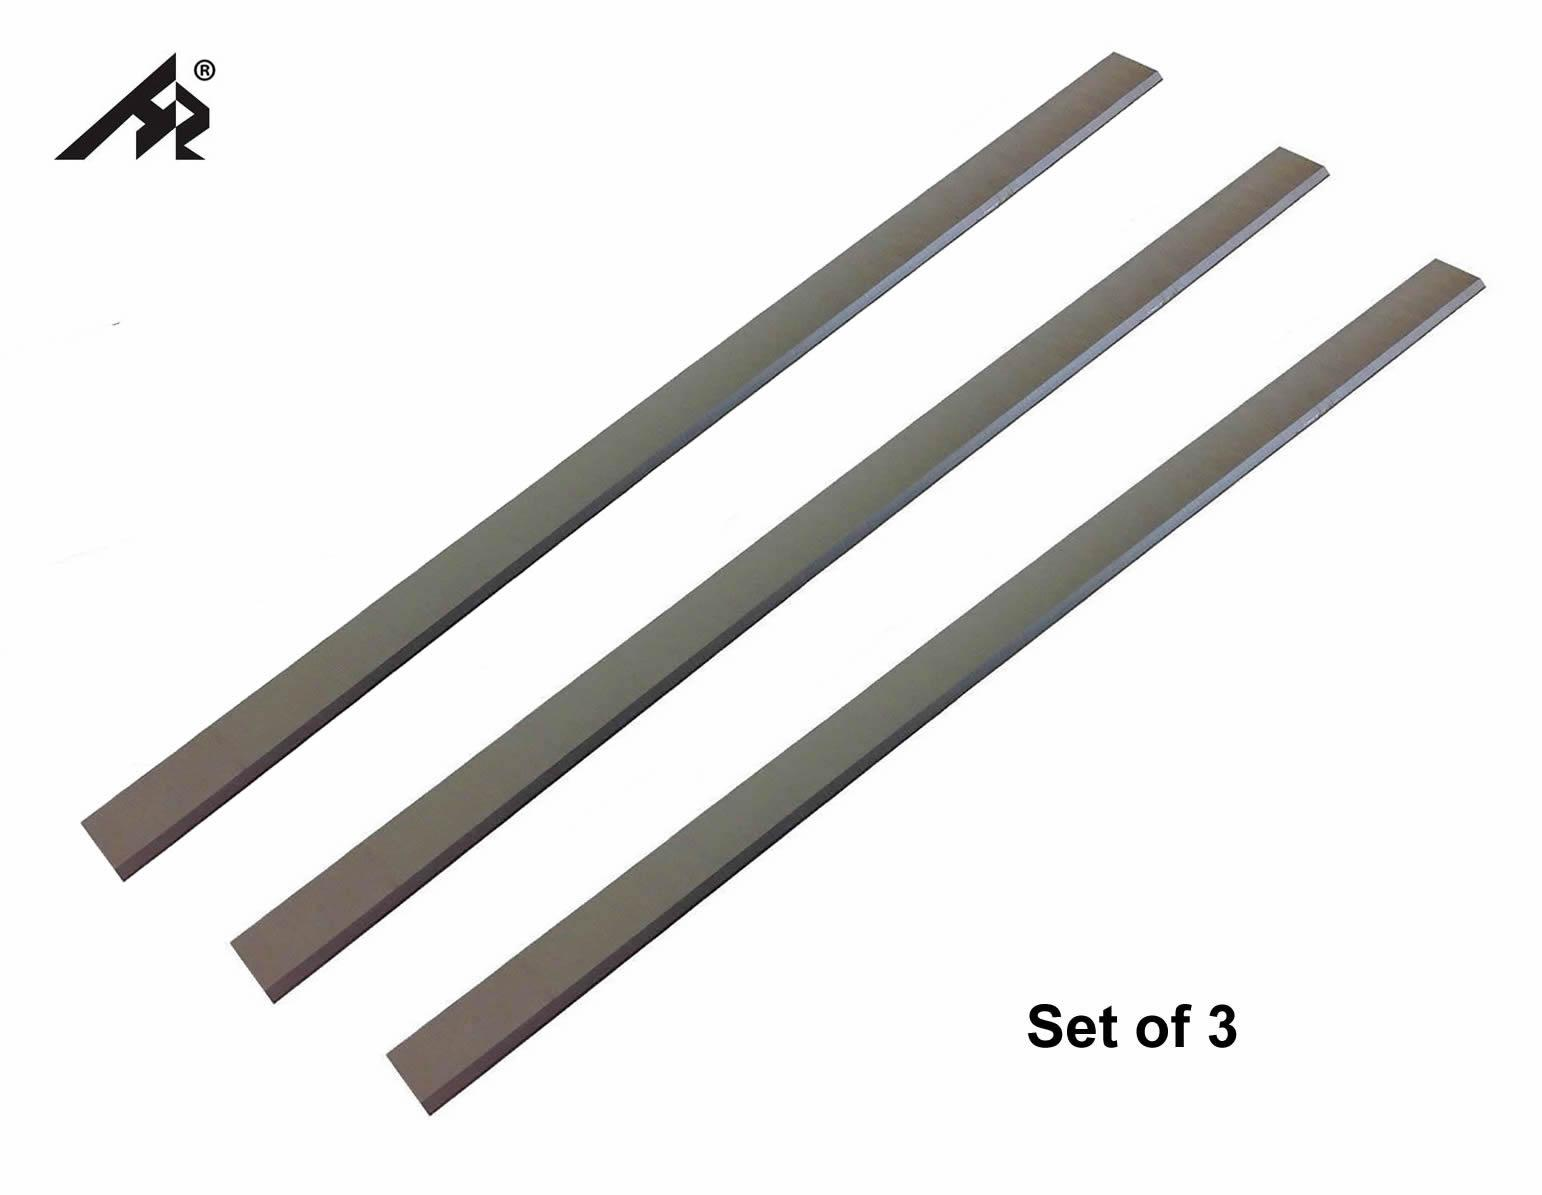 HZ 13-1/16 HSS Jointer Planer Knives blades For Jet JPM-13 708366, Grizzly 13 Delta - Set of 3